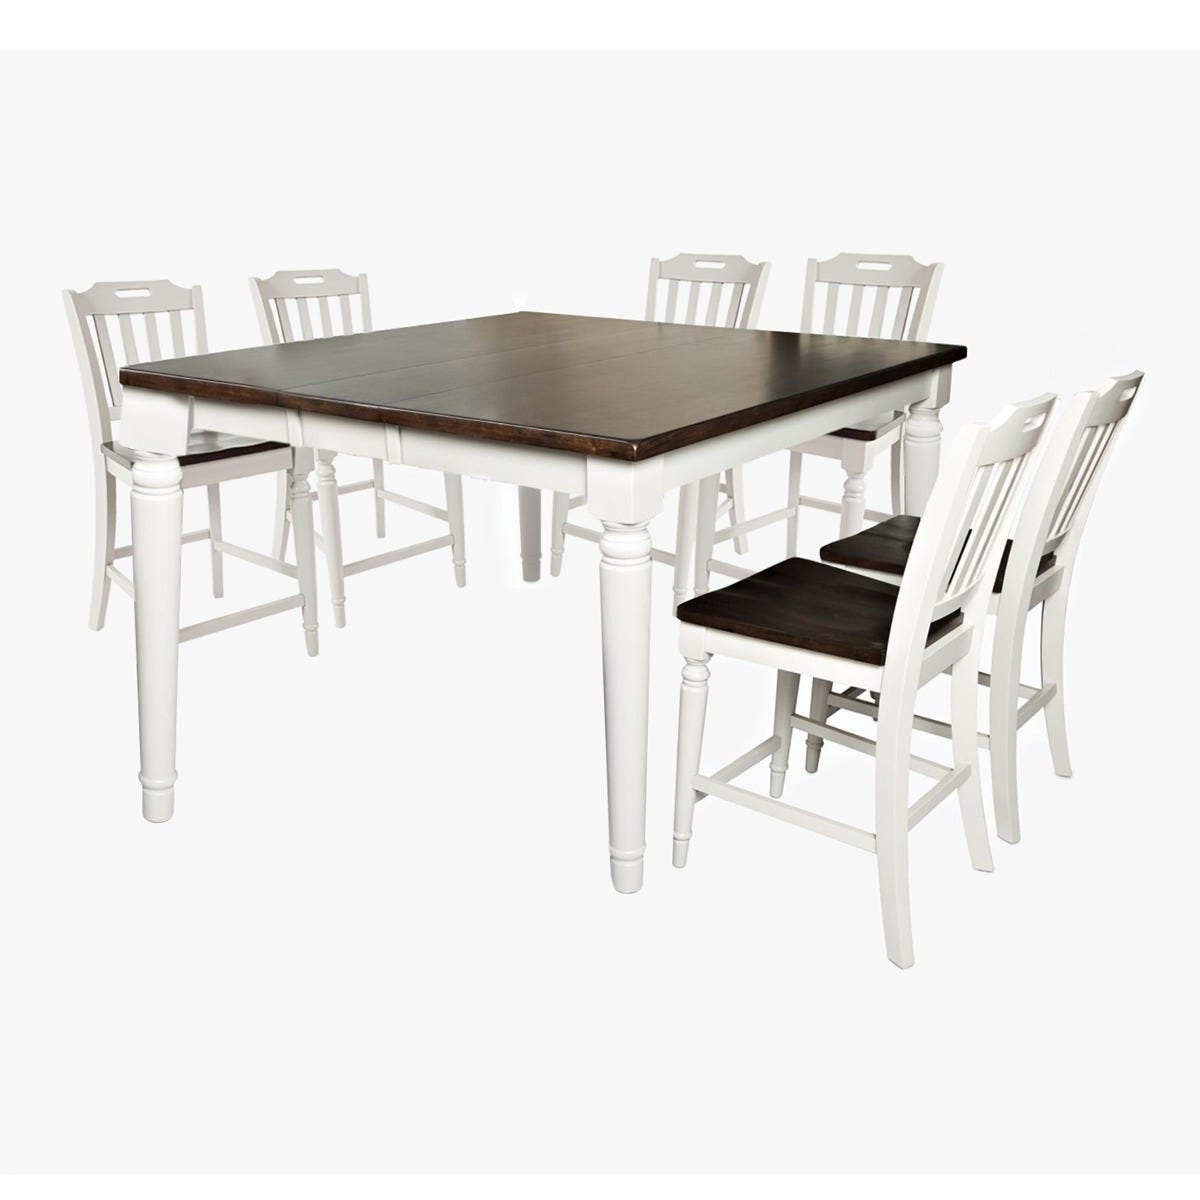 Orchard Park Extendable 7 Piece Counter Height Dining Set